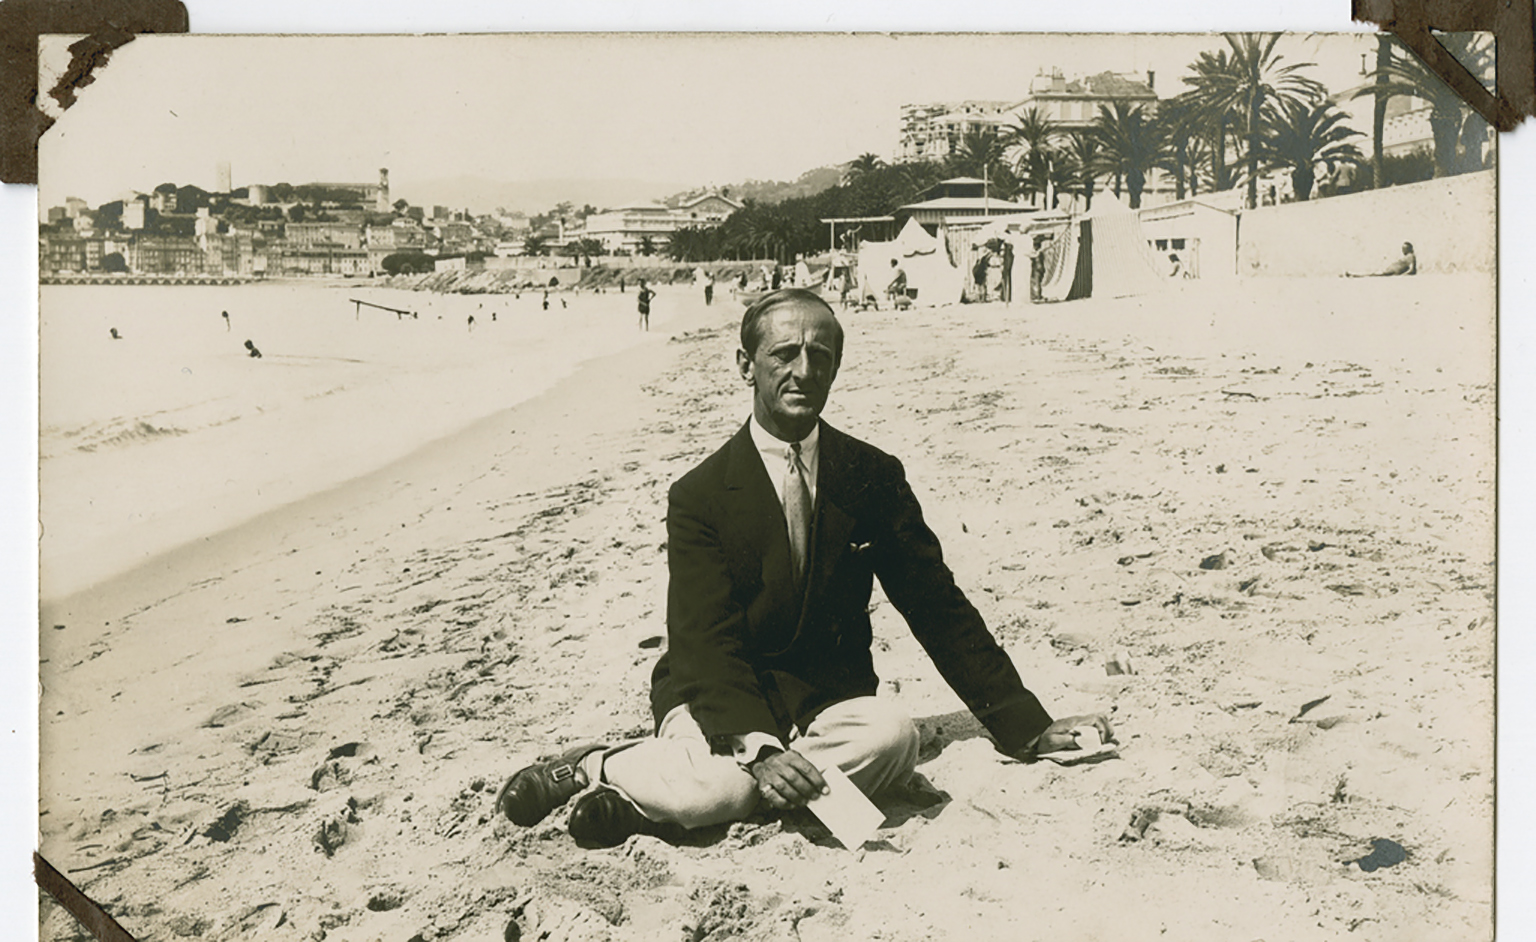 Marsden Hartley in Cannes, France, in 1925, in a gelatin silver print made by an unknown photographer. MUST CREDIT: Marsden Hartley Memorial Collection, Bates College Museum of Art